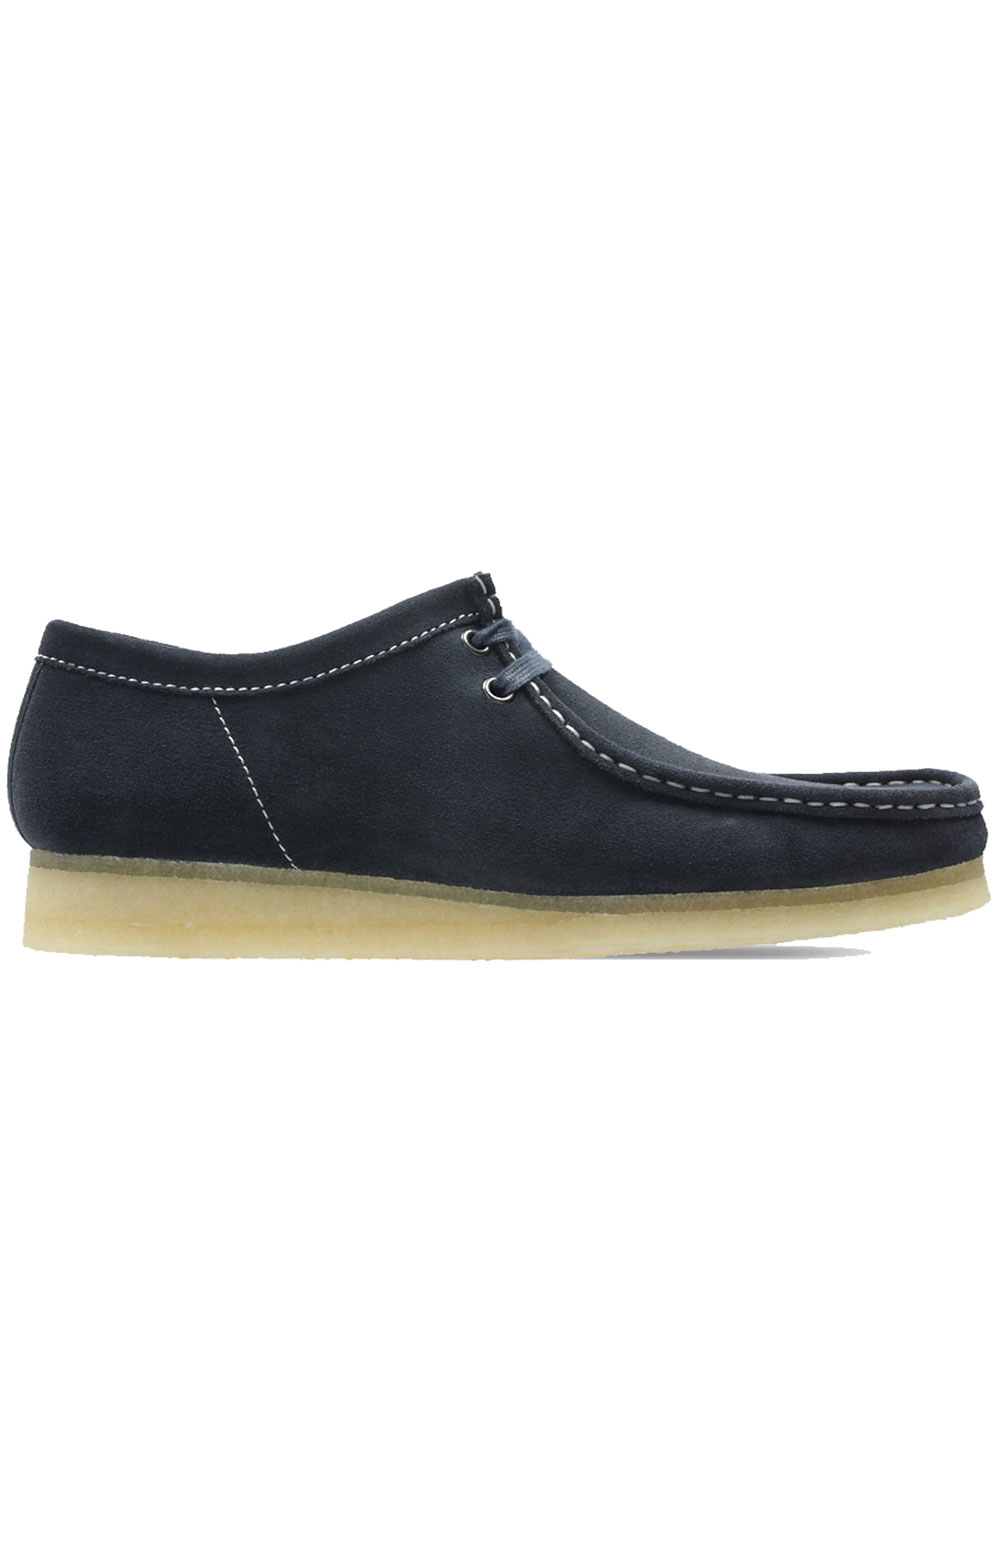 (26154744) Wallabee Shoes - Ink Suede